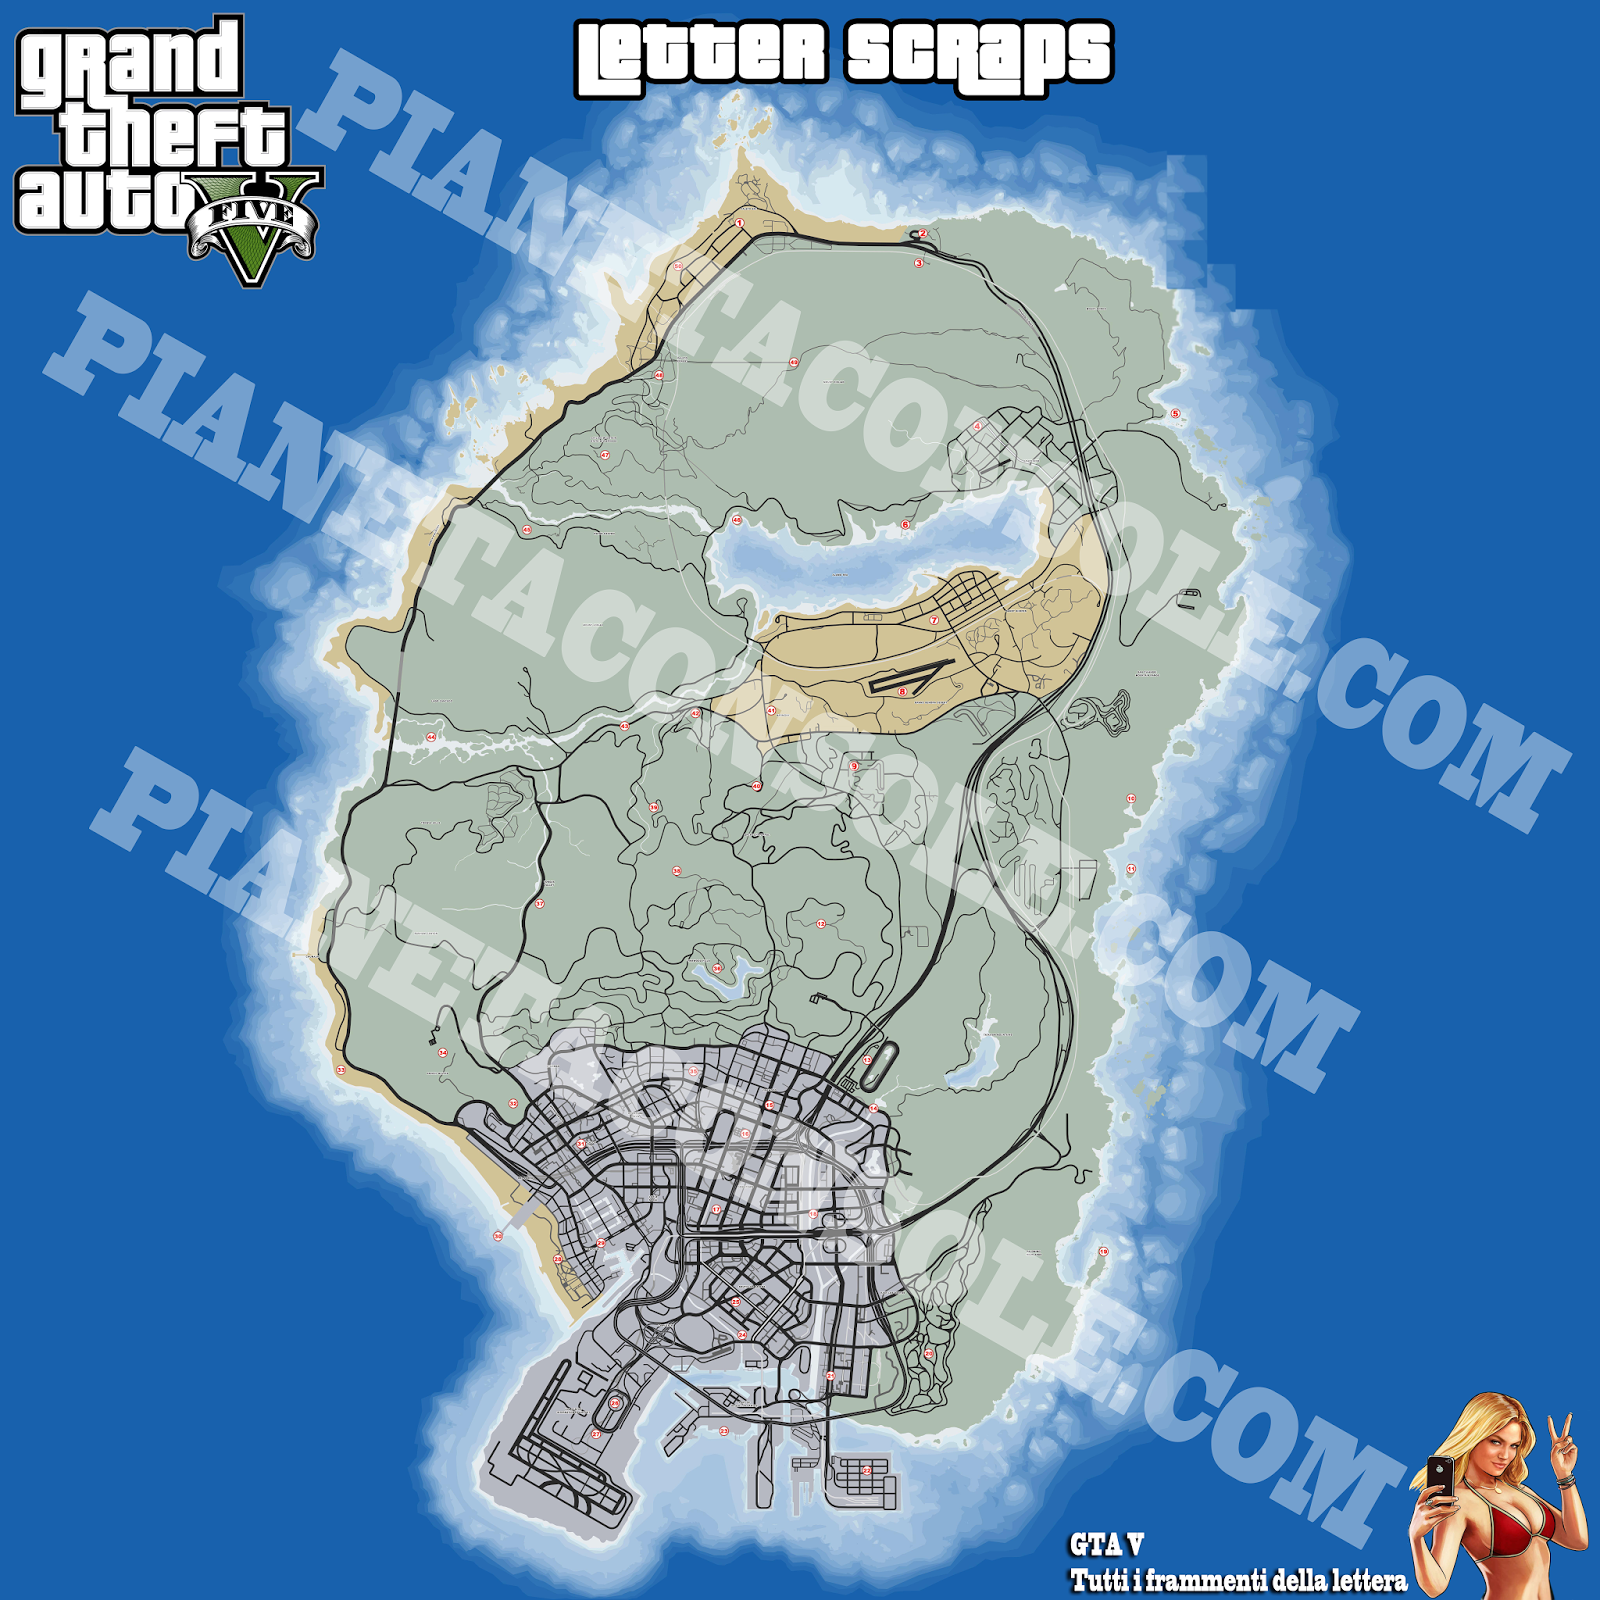 Gta v gta 5 lettera grand theft auto v letter scrap locations png